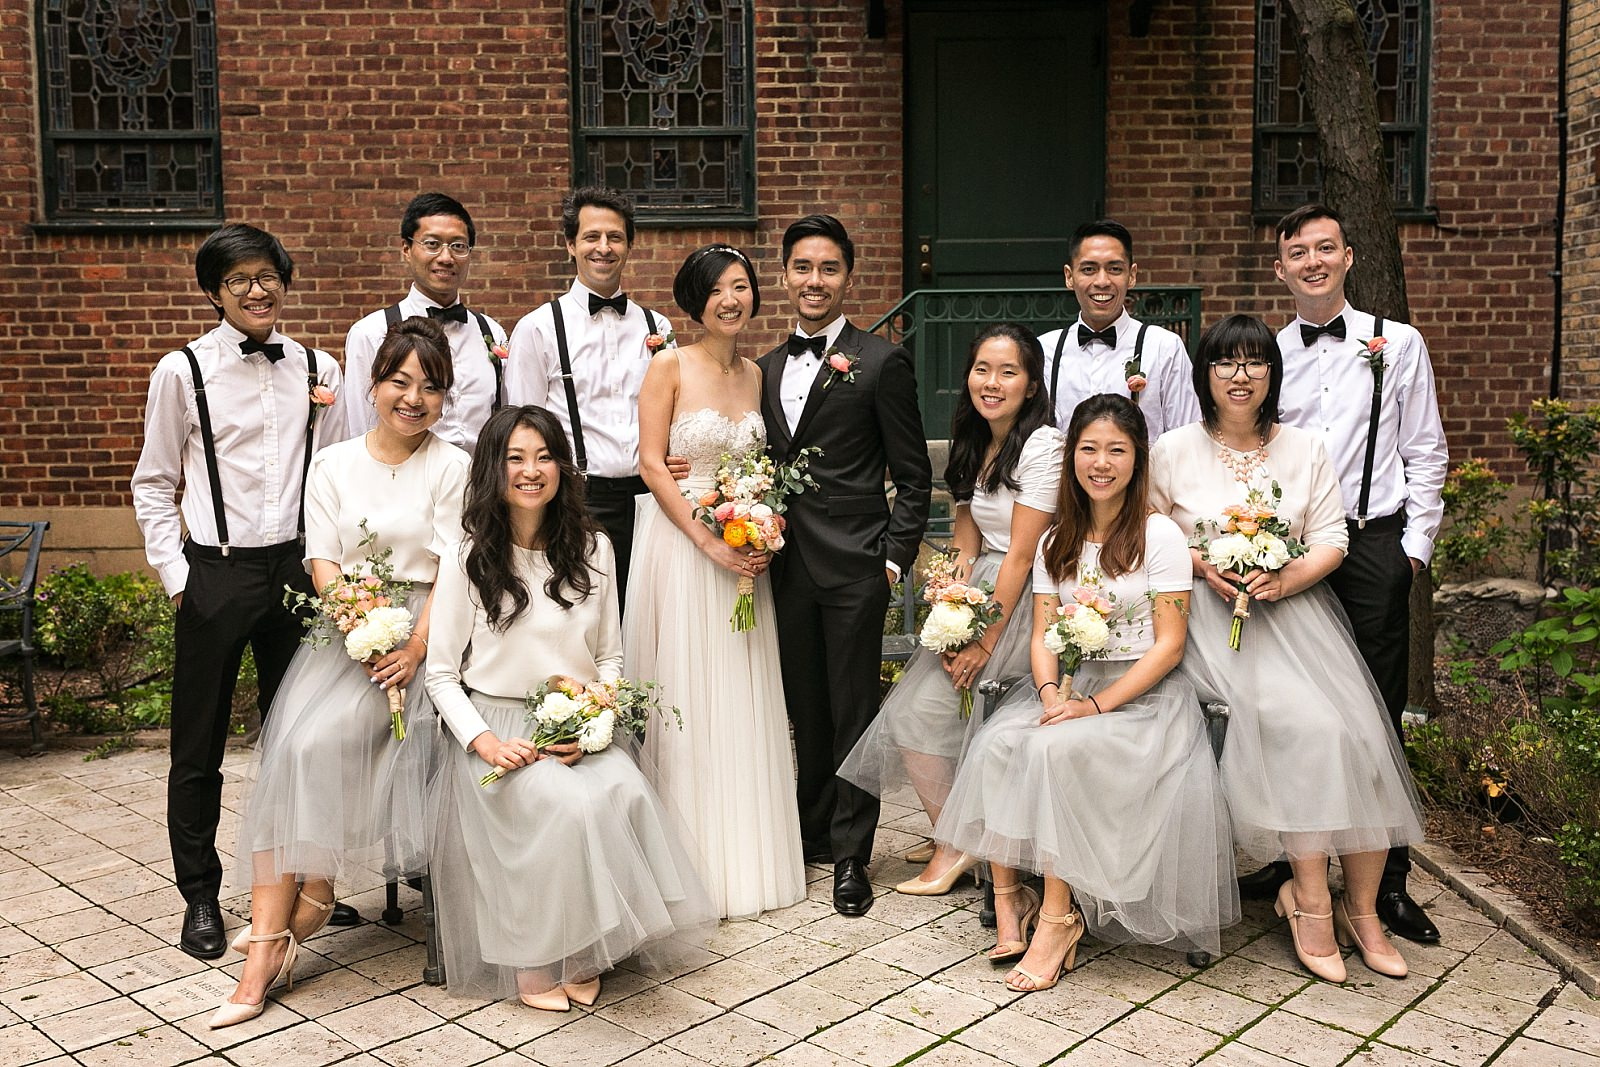 NYC_Wedding_Photographer_JeNi_Wed_15.jpg